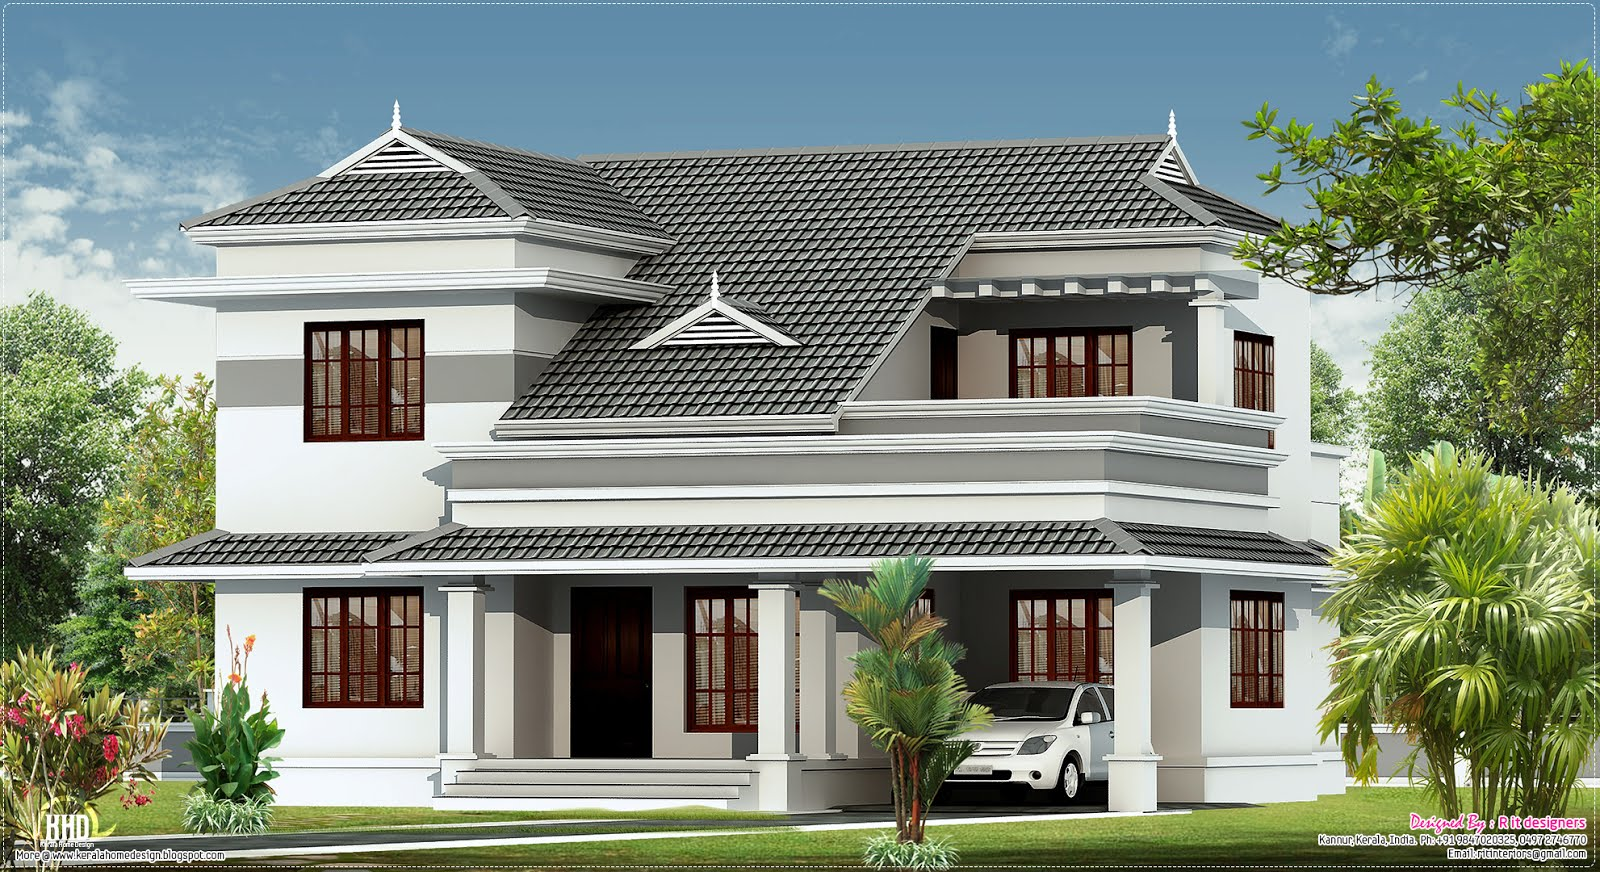 New villa in kerala New home plans